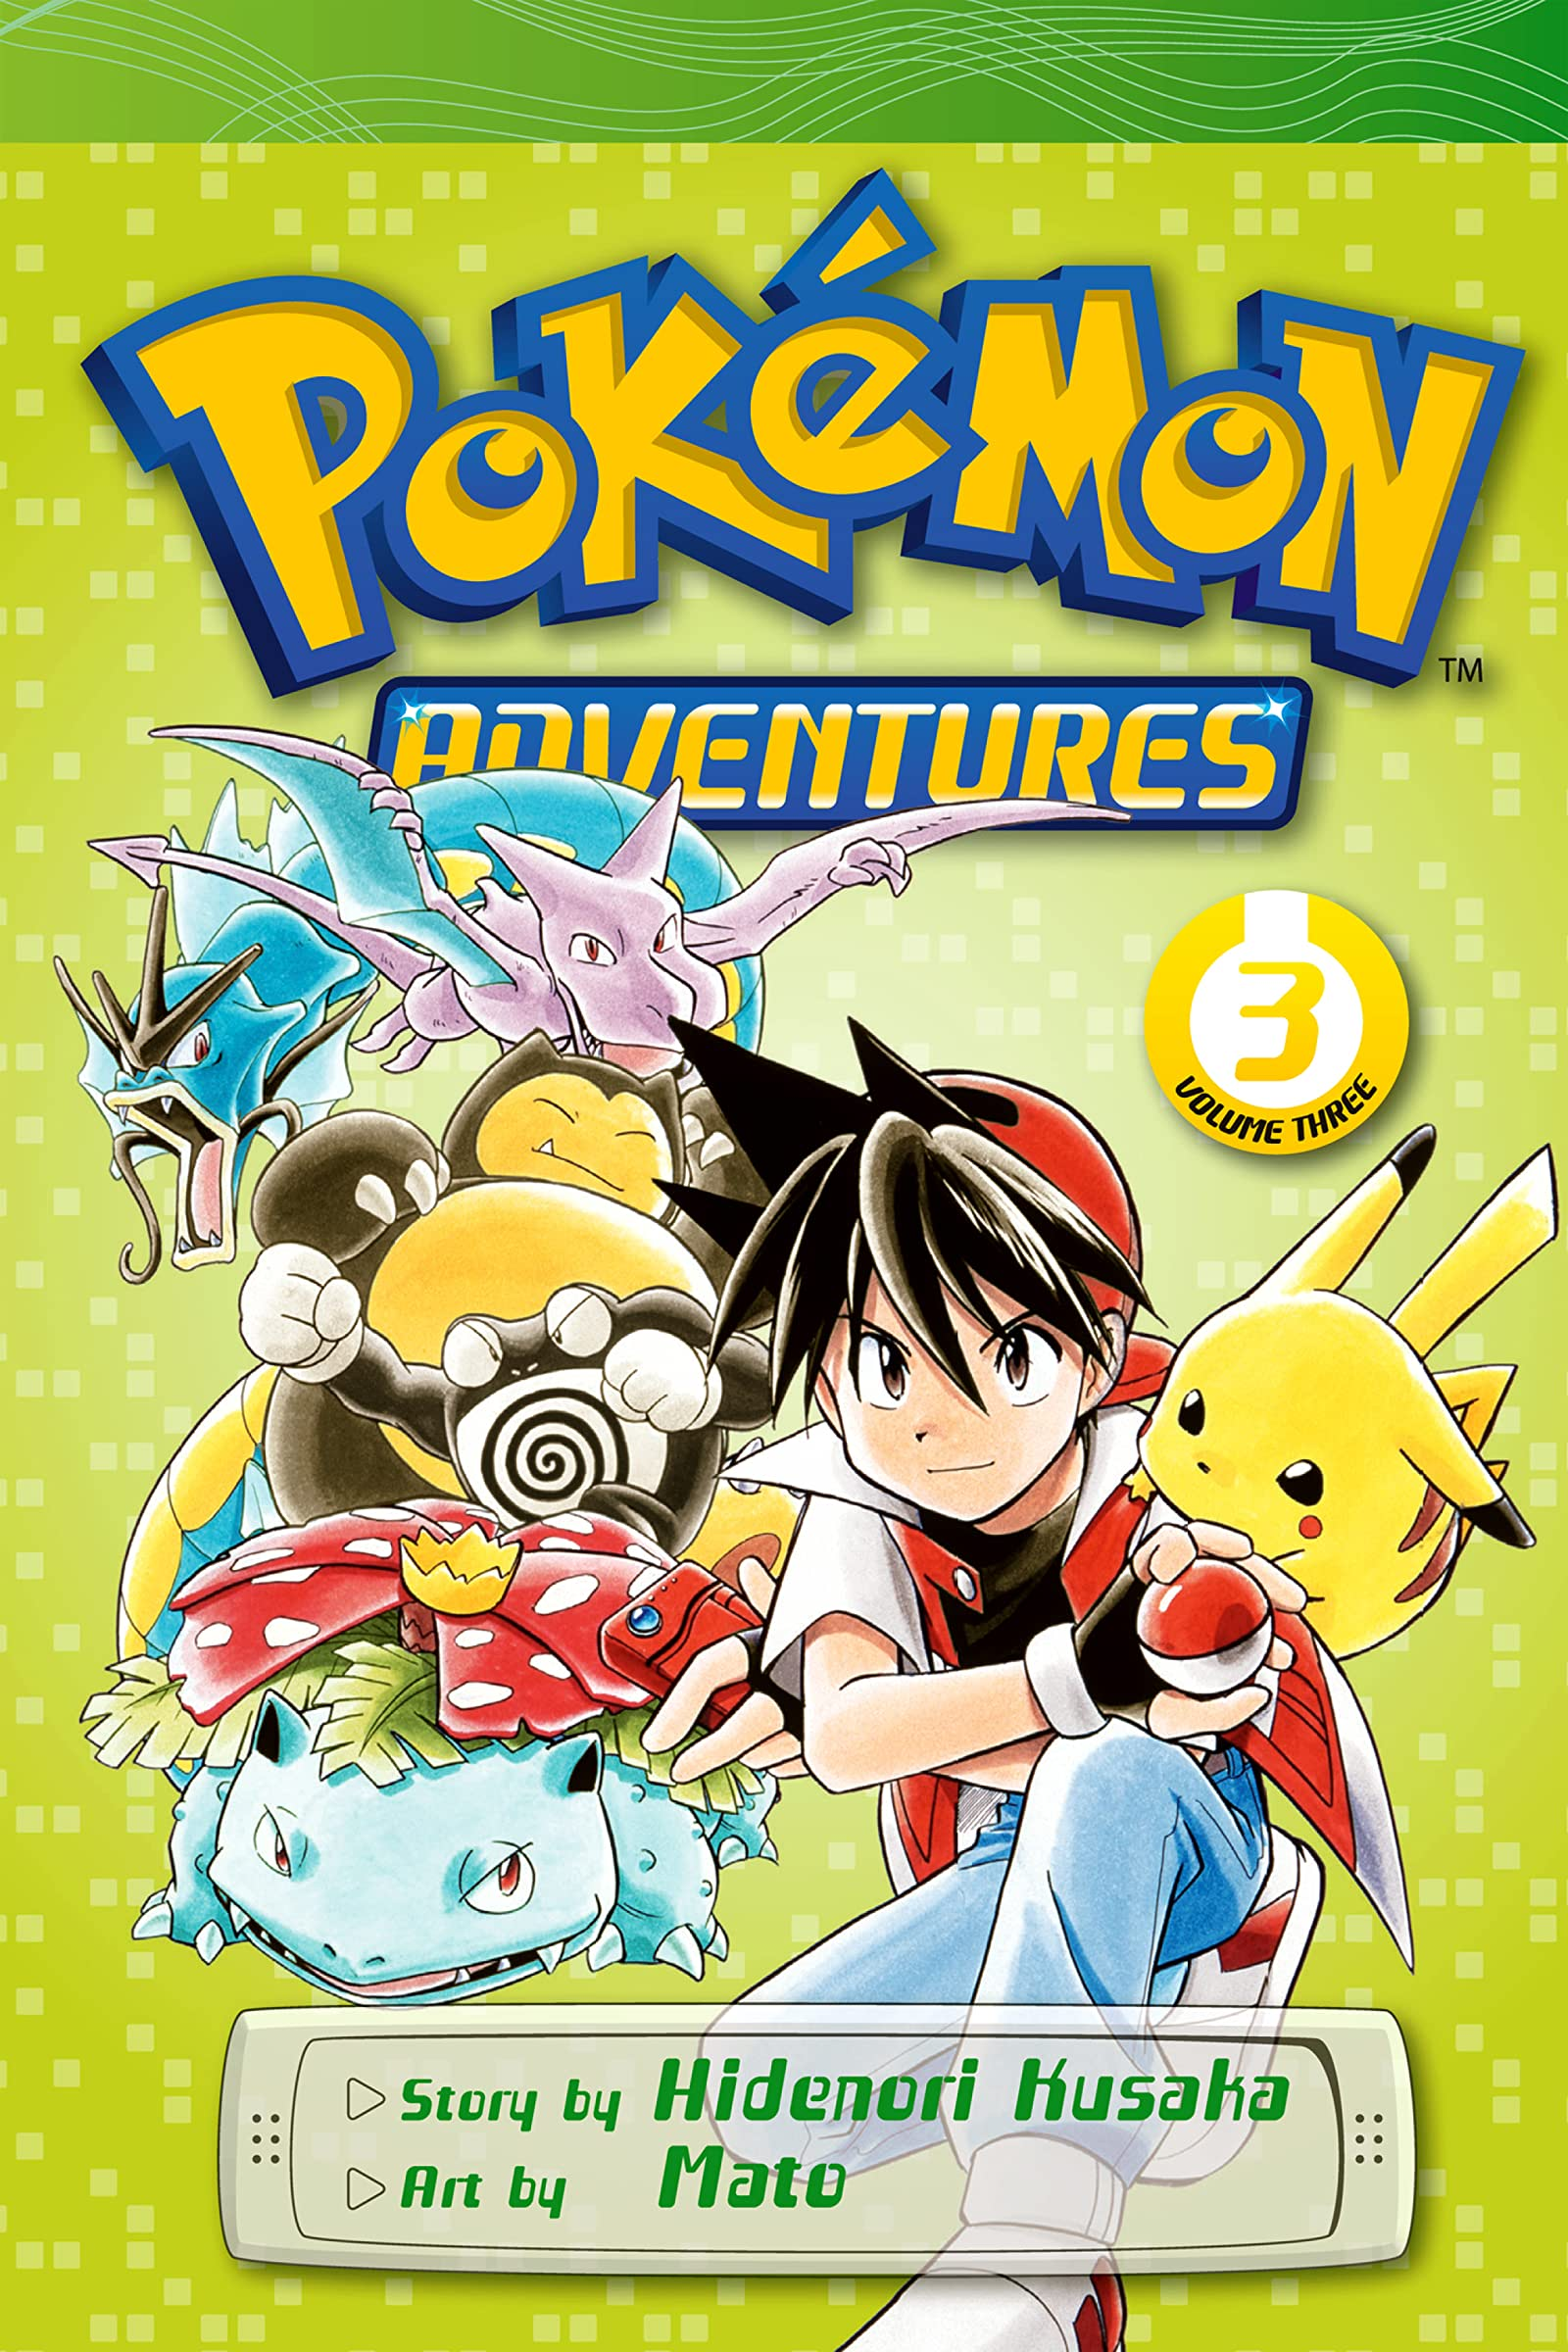 Pokémon Adventures (Red and Blue) Vol. 3 - Comics by comiXology